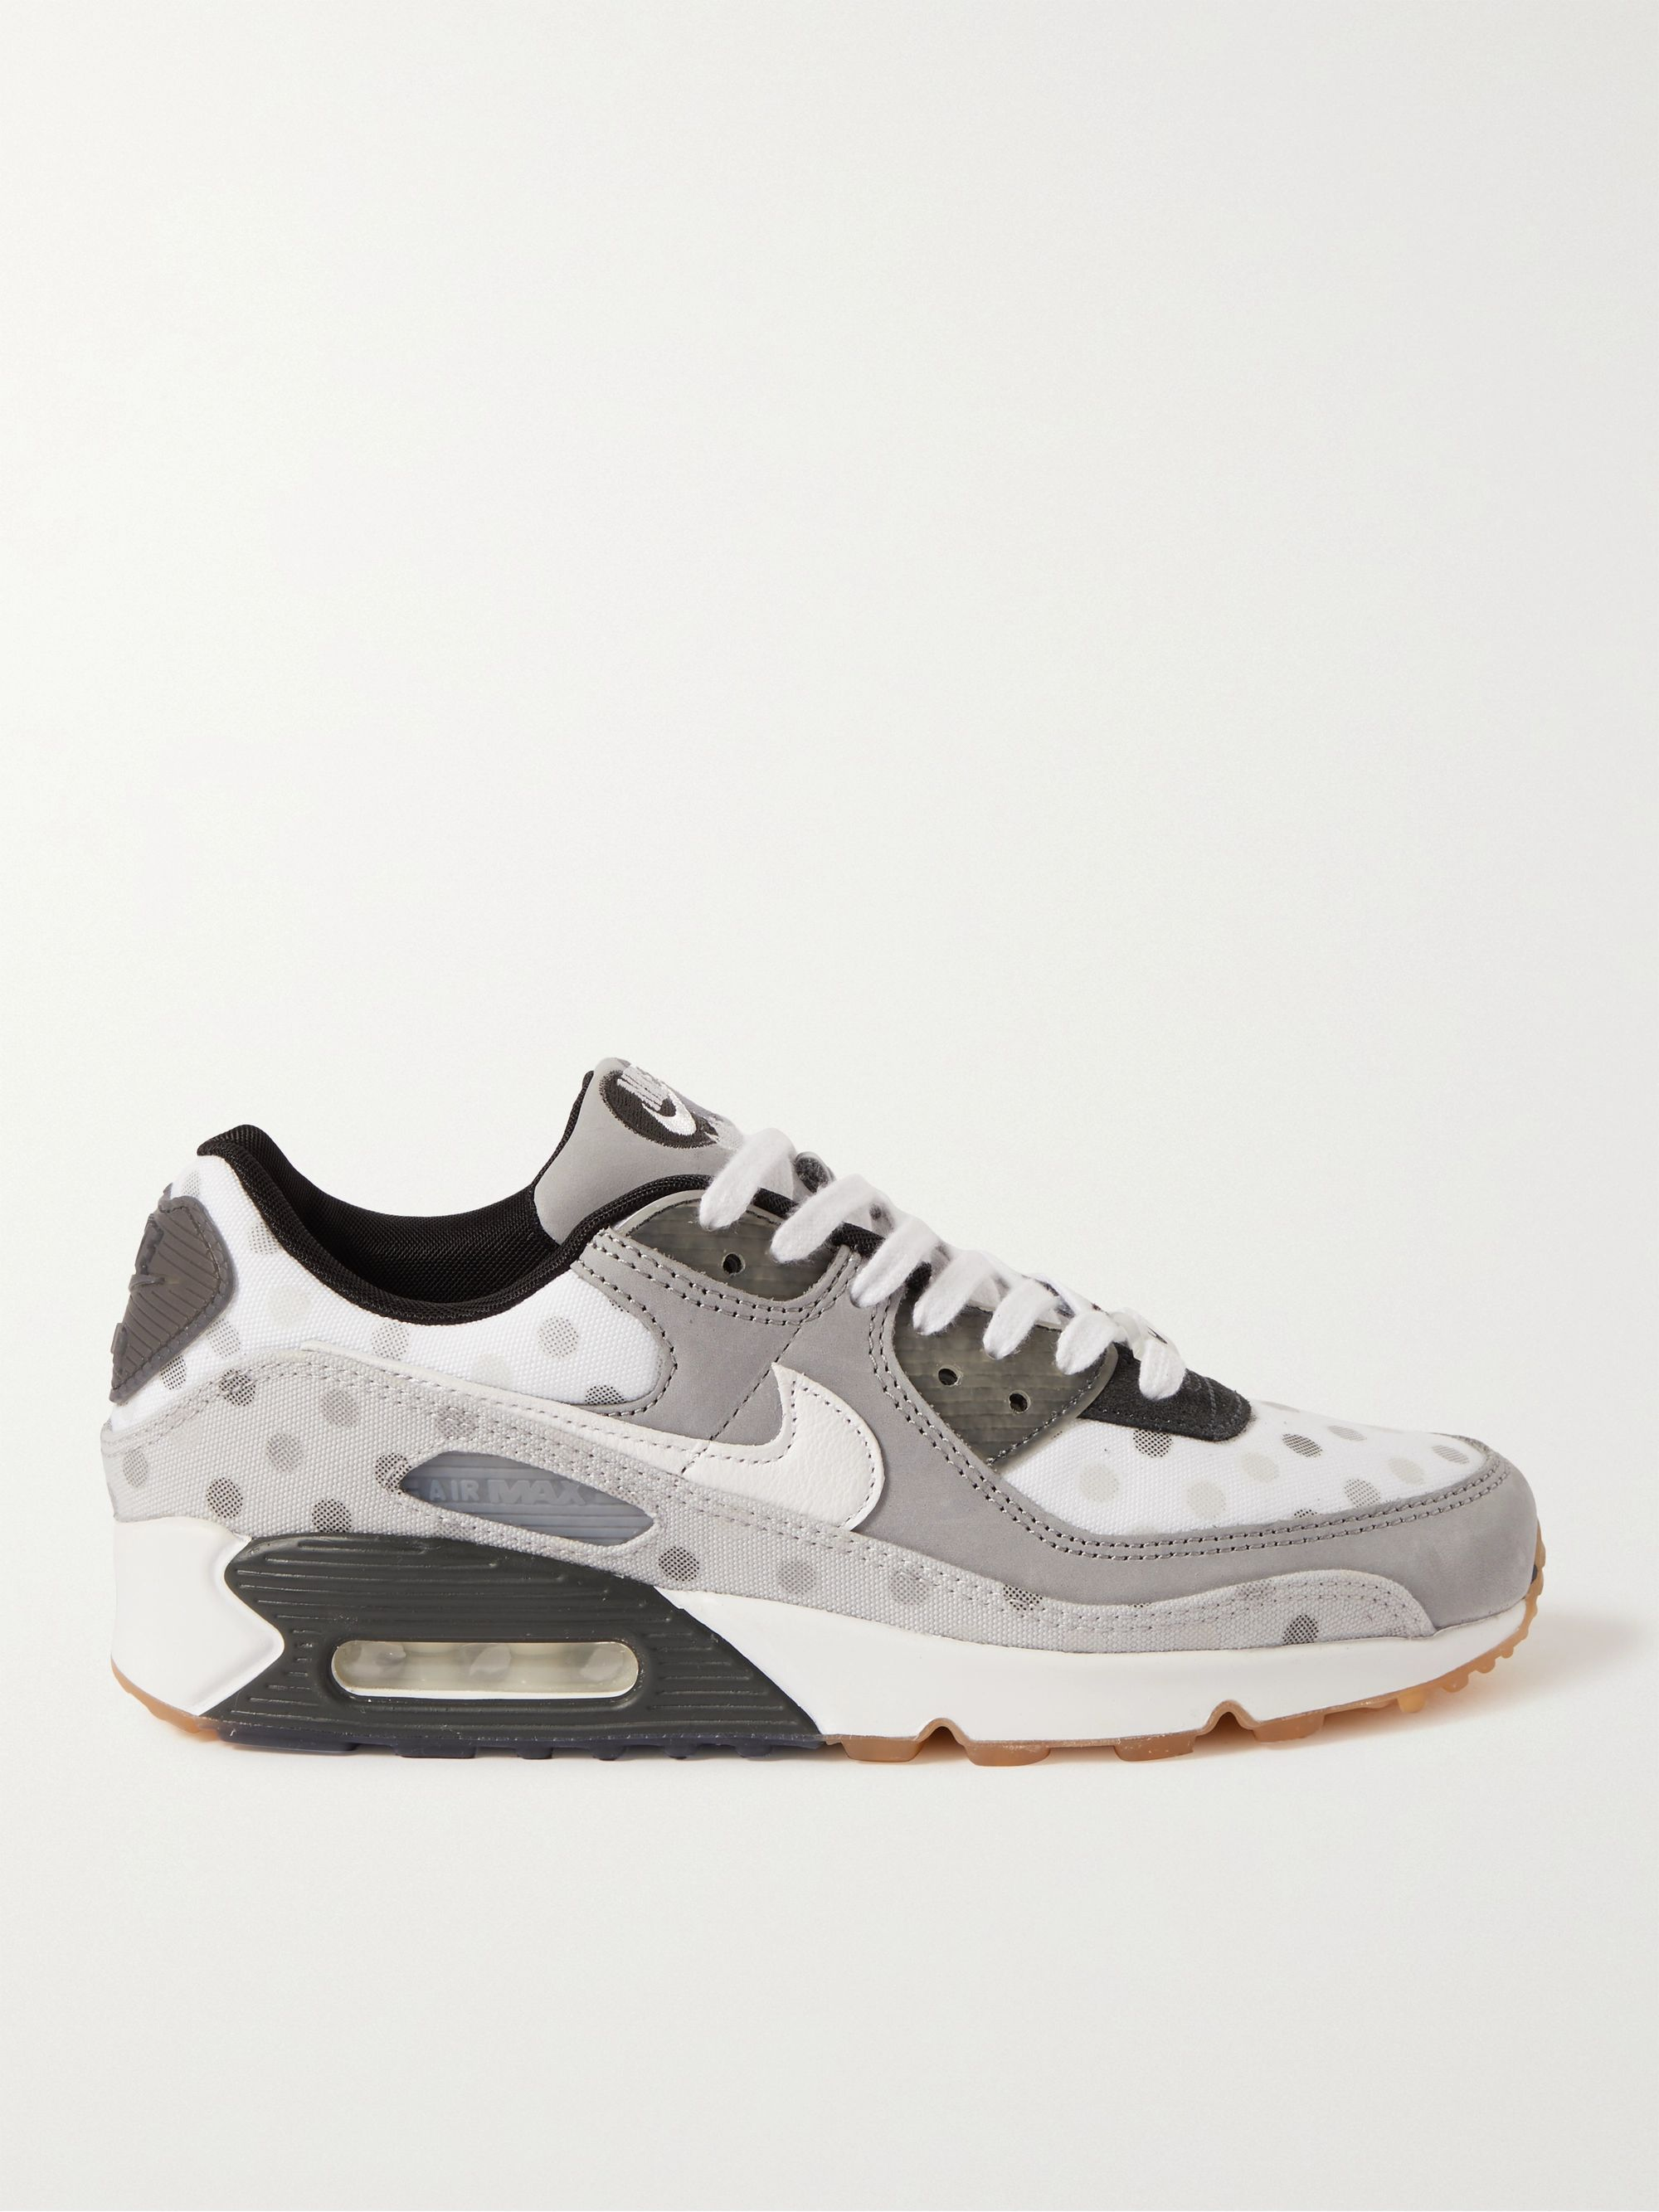 White Air Max 90 NRG Polka-Dot Mesh, Leather and Suede Sneakers ...